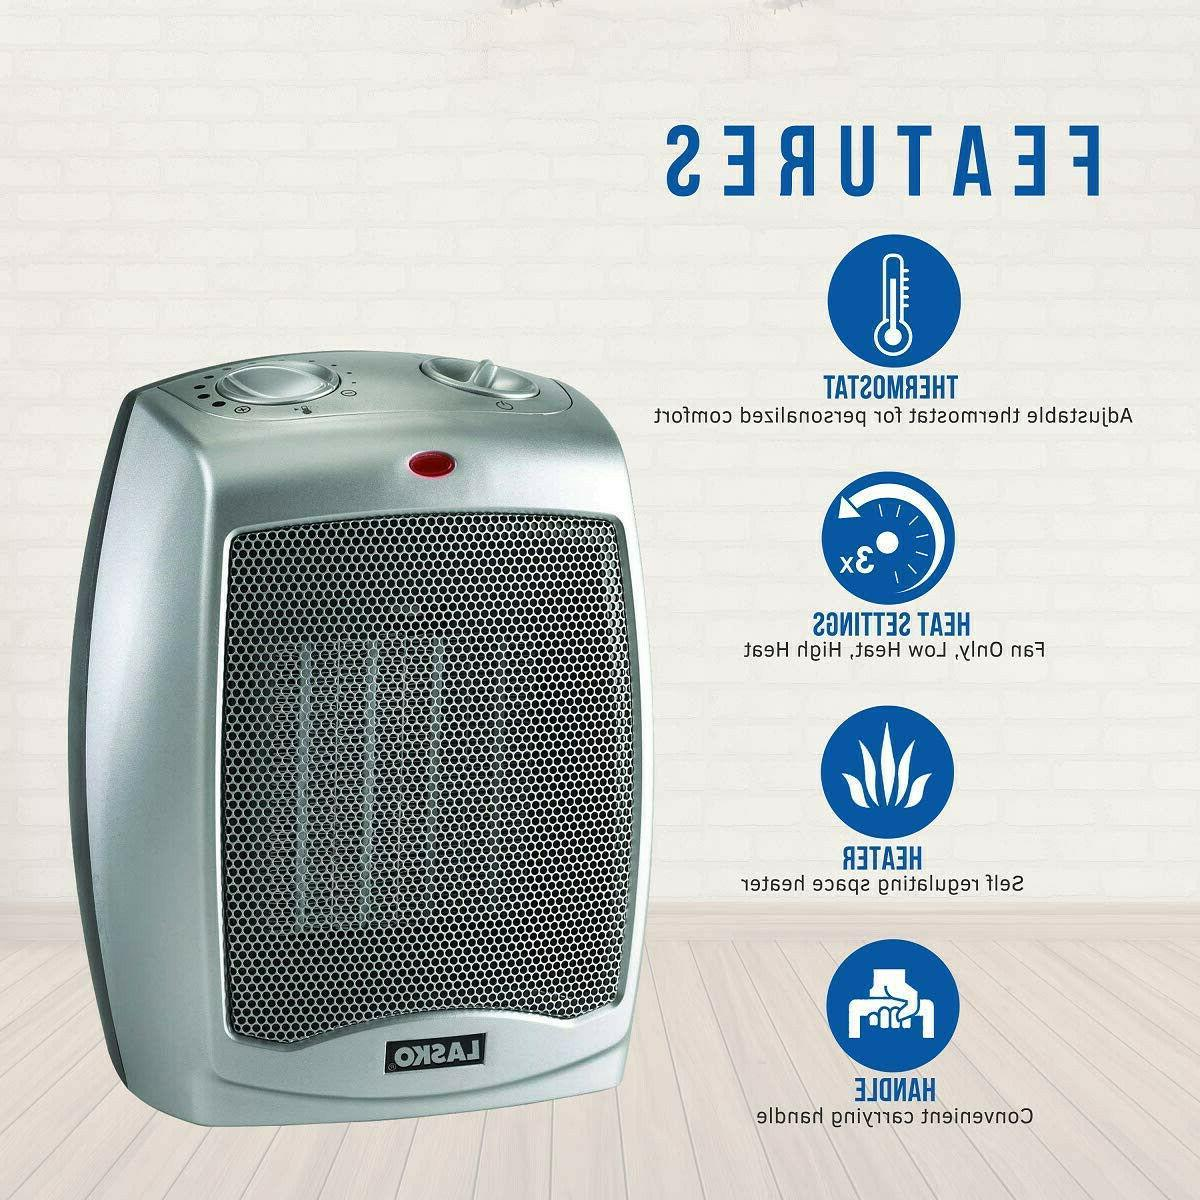 Lasko 754200 Ceramic Portable Space with Thermostat Perfect